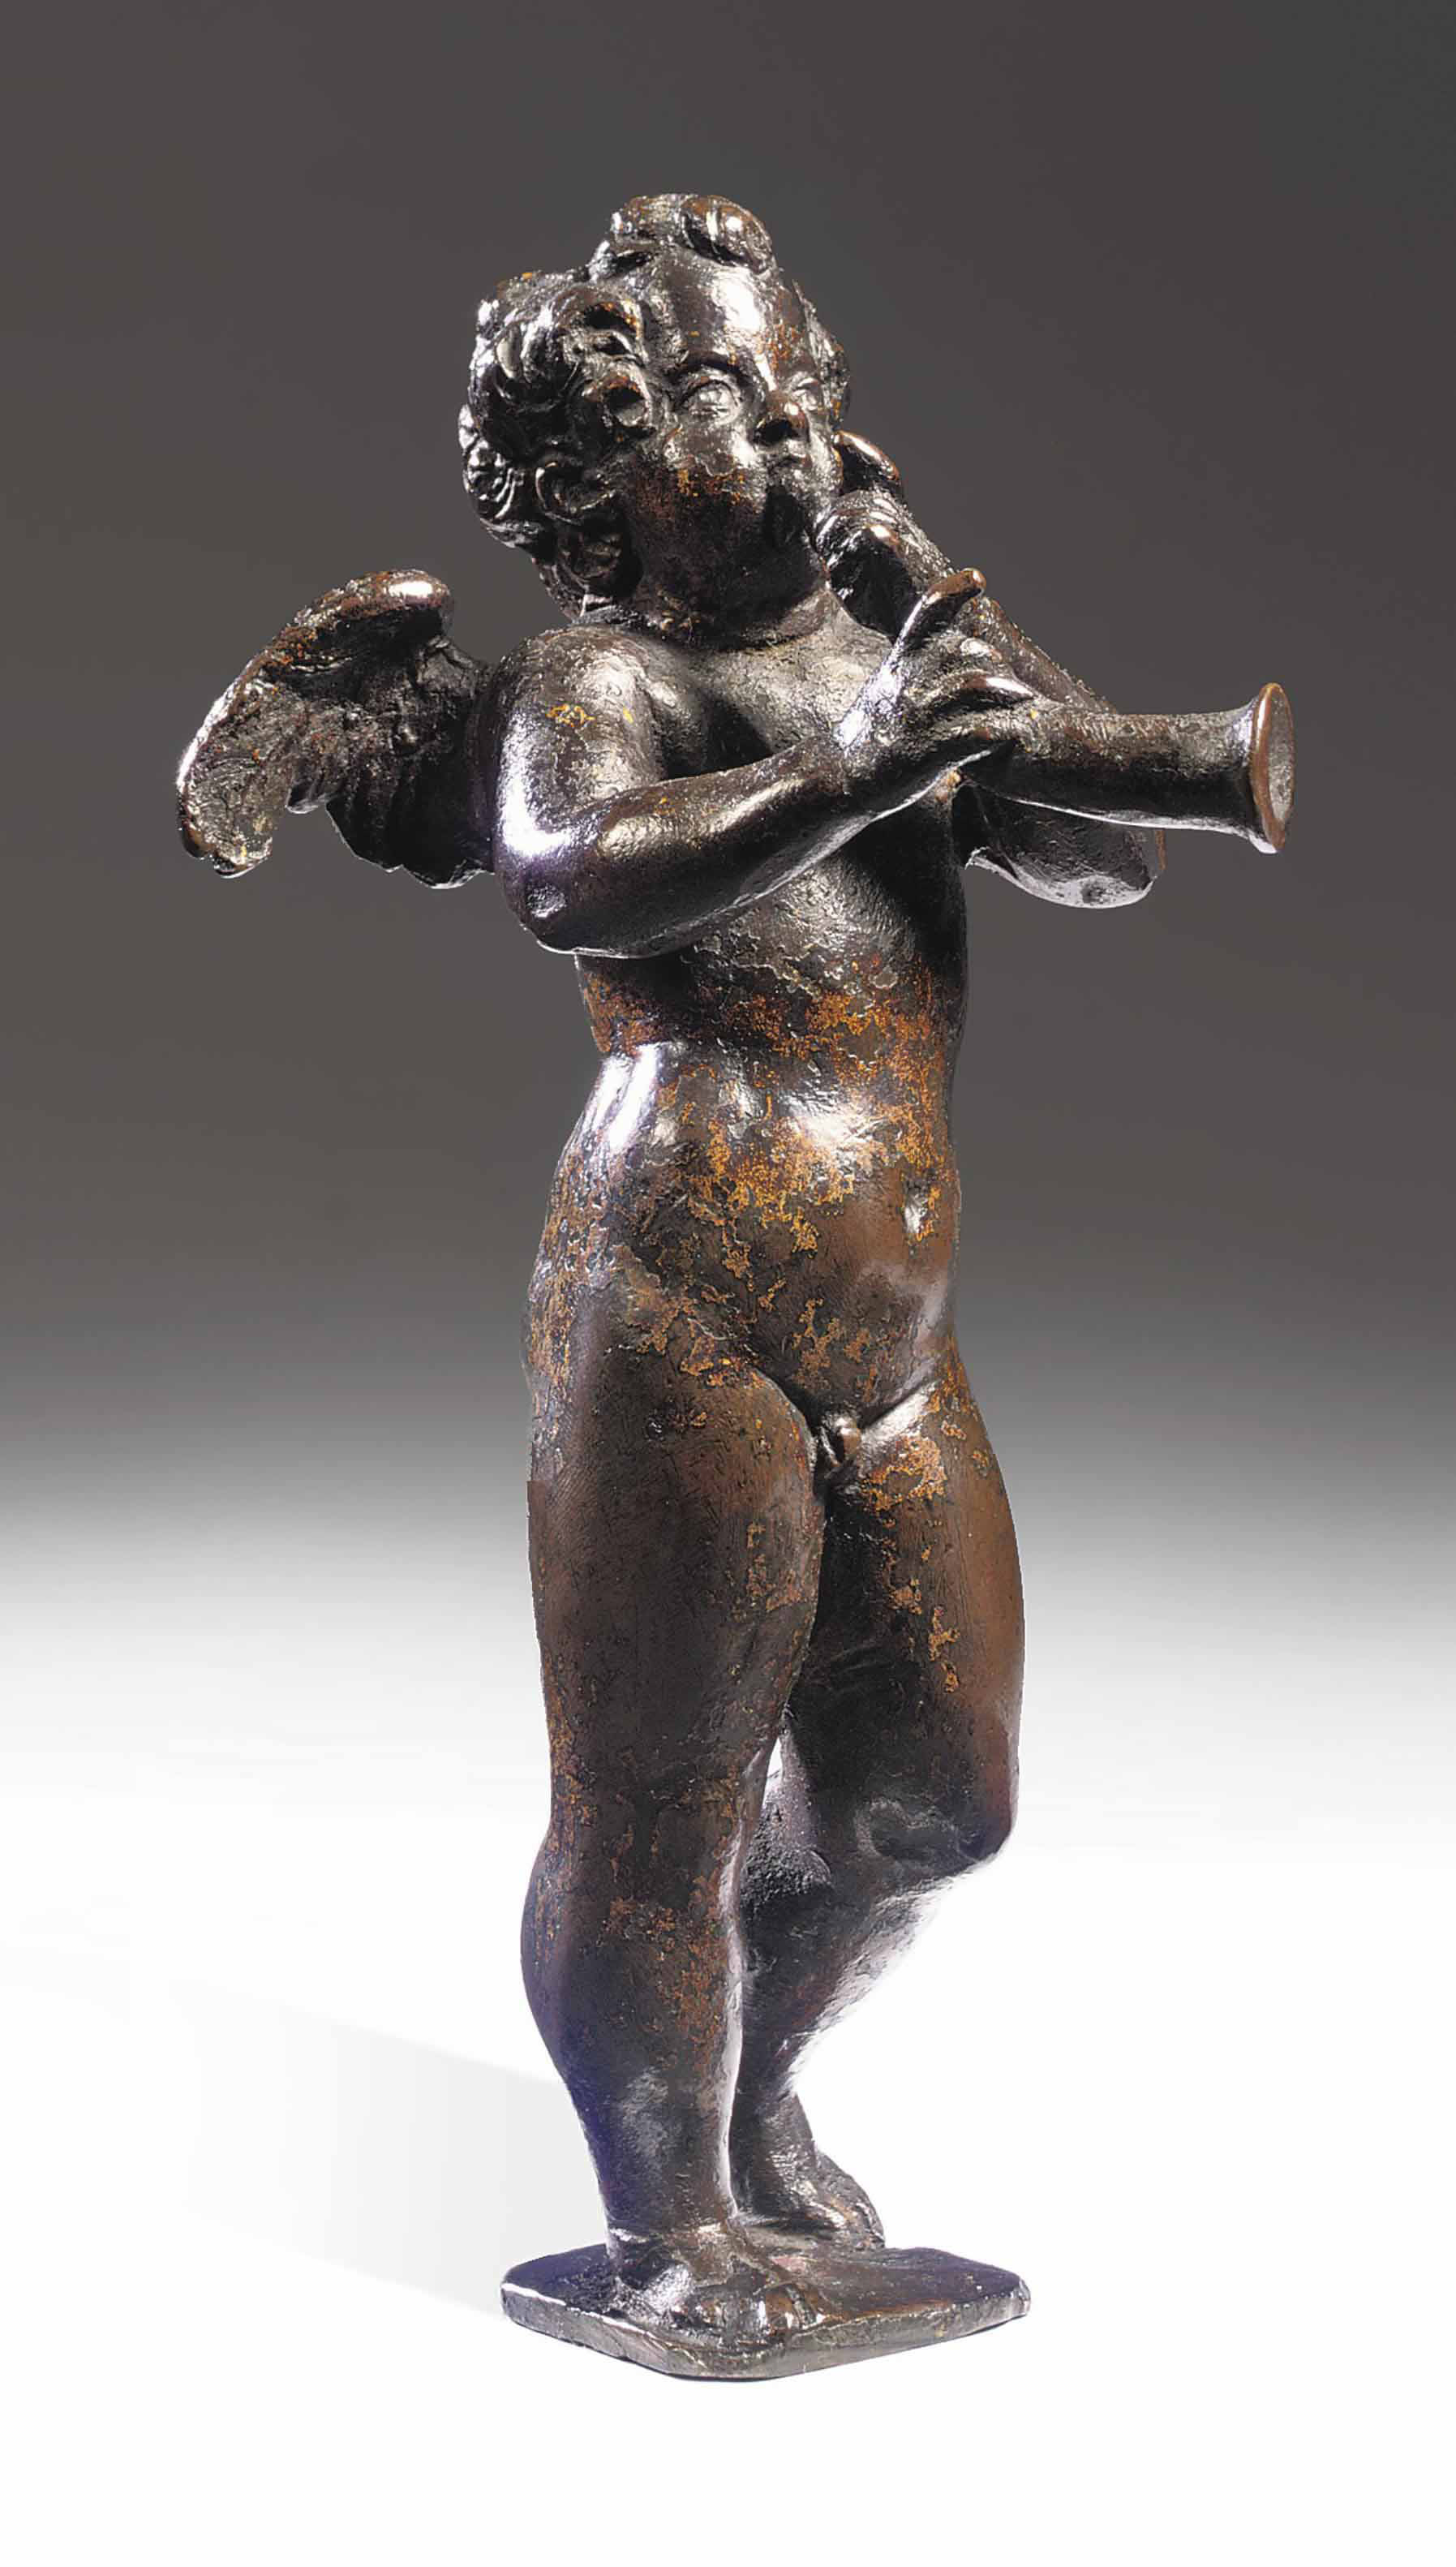 A BRONZE FIGURE OF A PUTTO PLAYING THE HORN